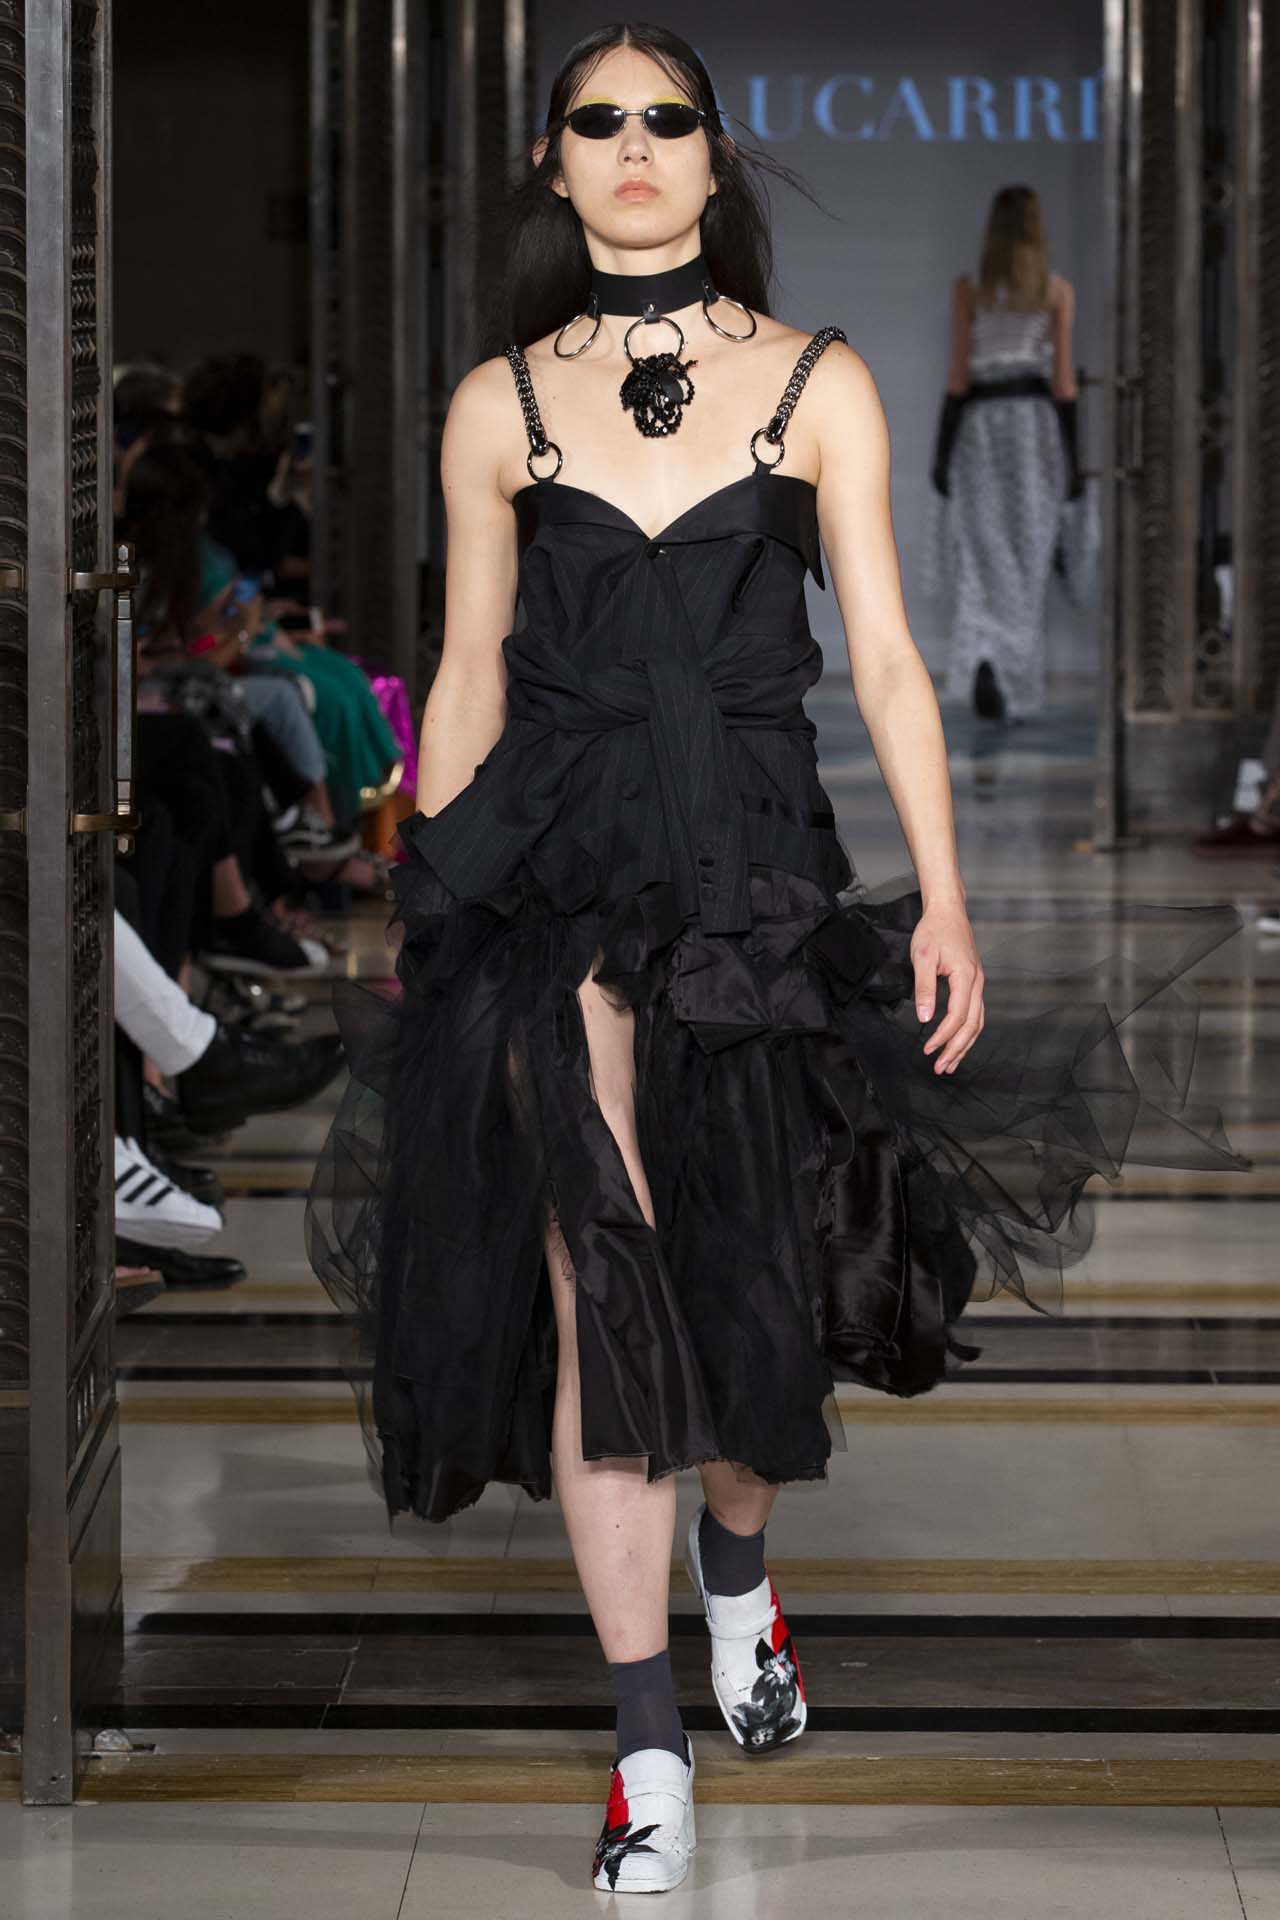 Fashion scout ss19 ones to watch aucarre (11)